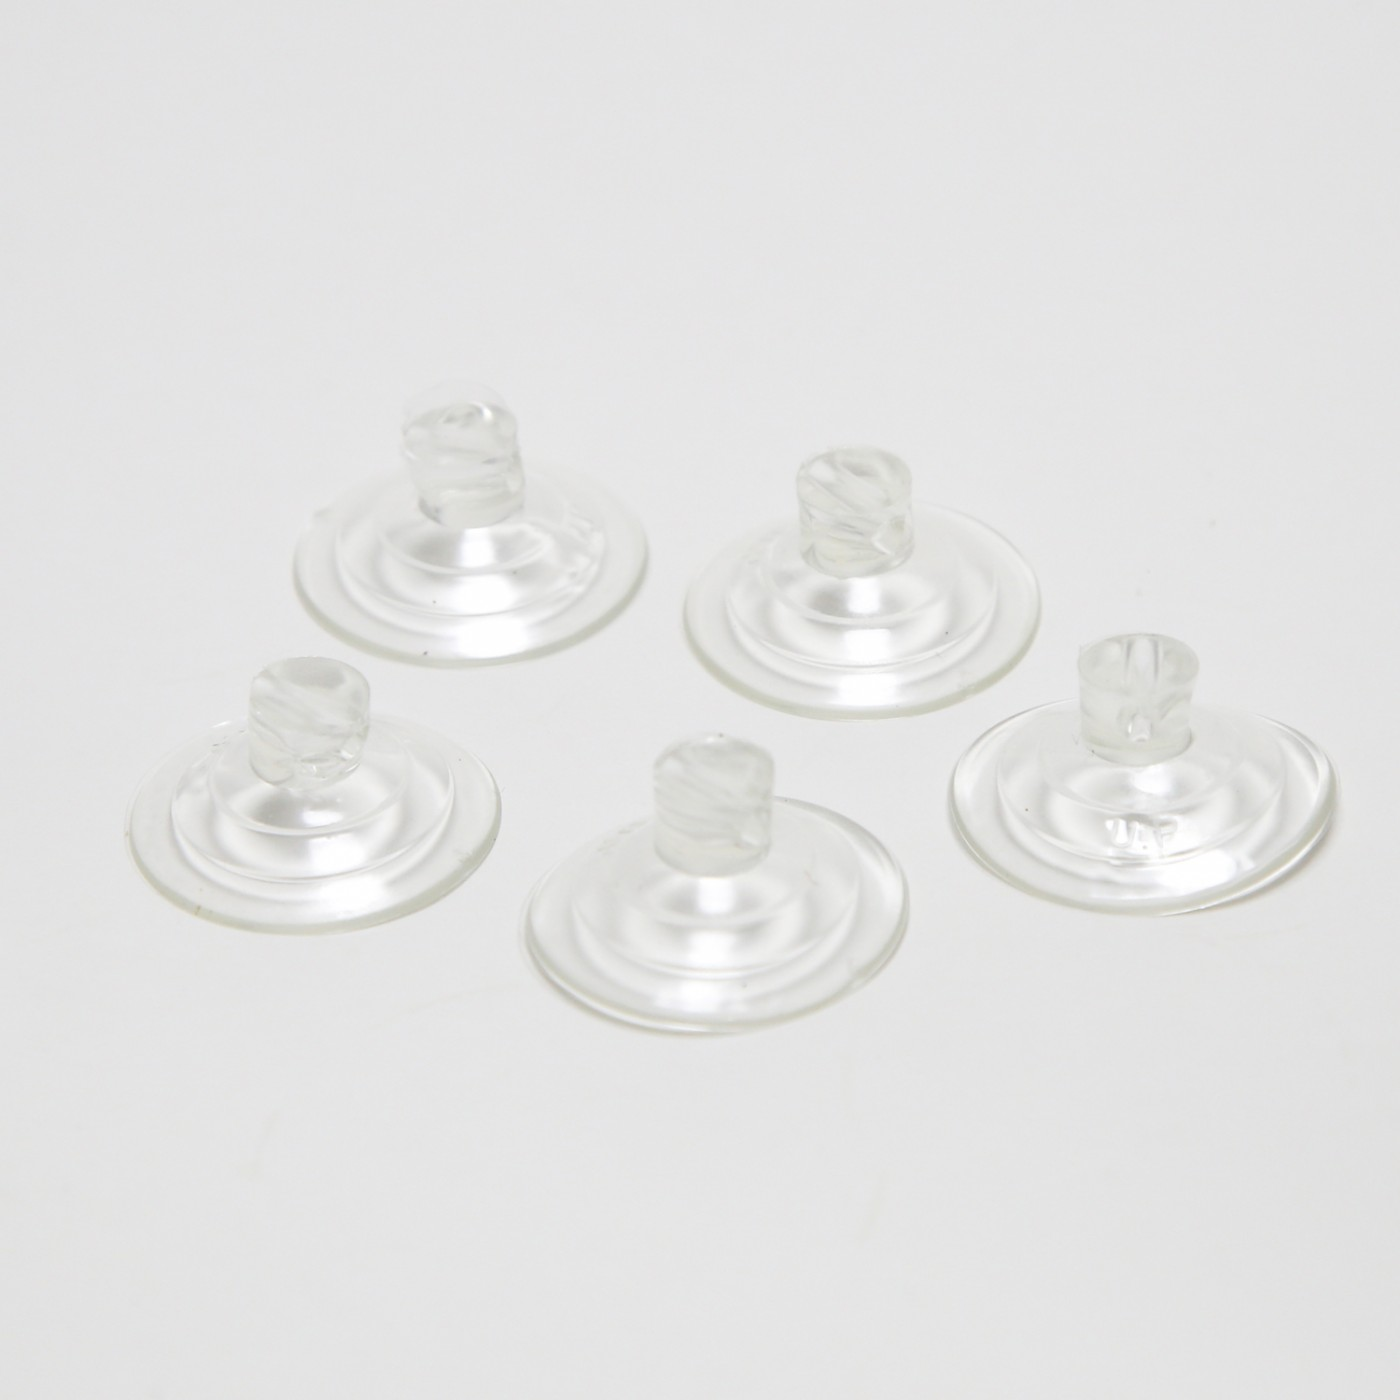 UP-0006 Kancasız Minik Boy Vantuz (22mm)